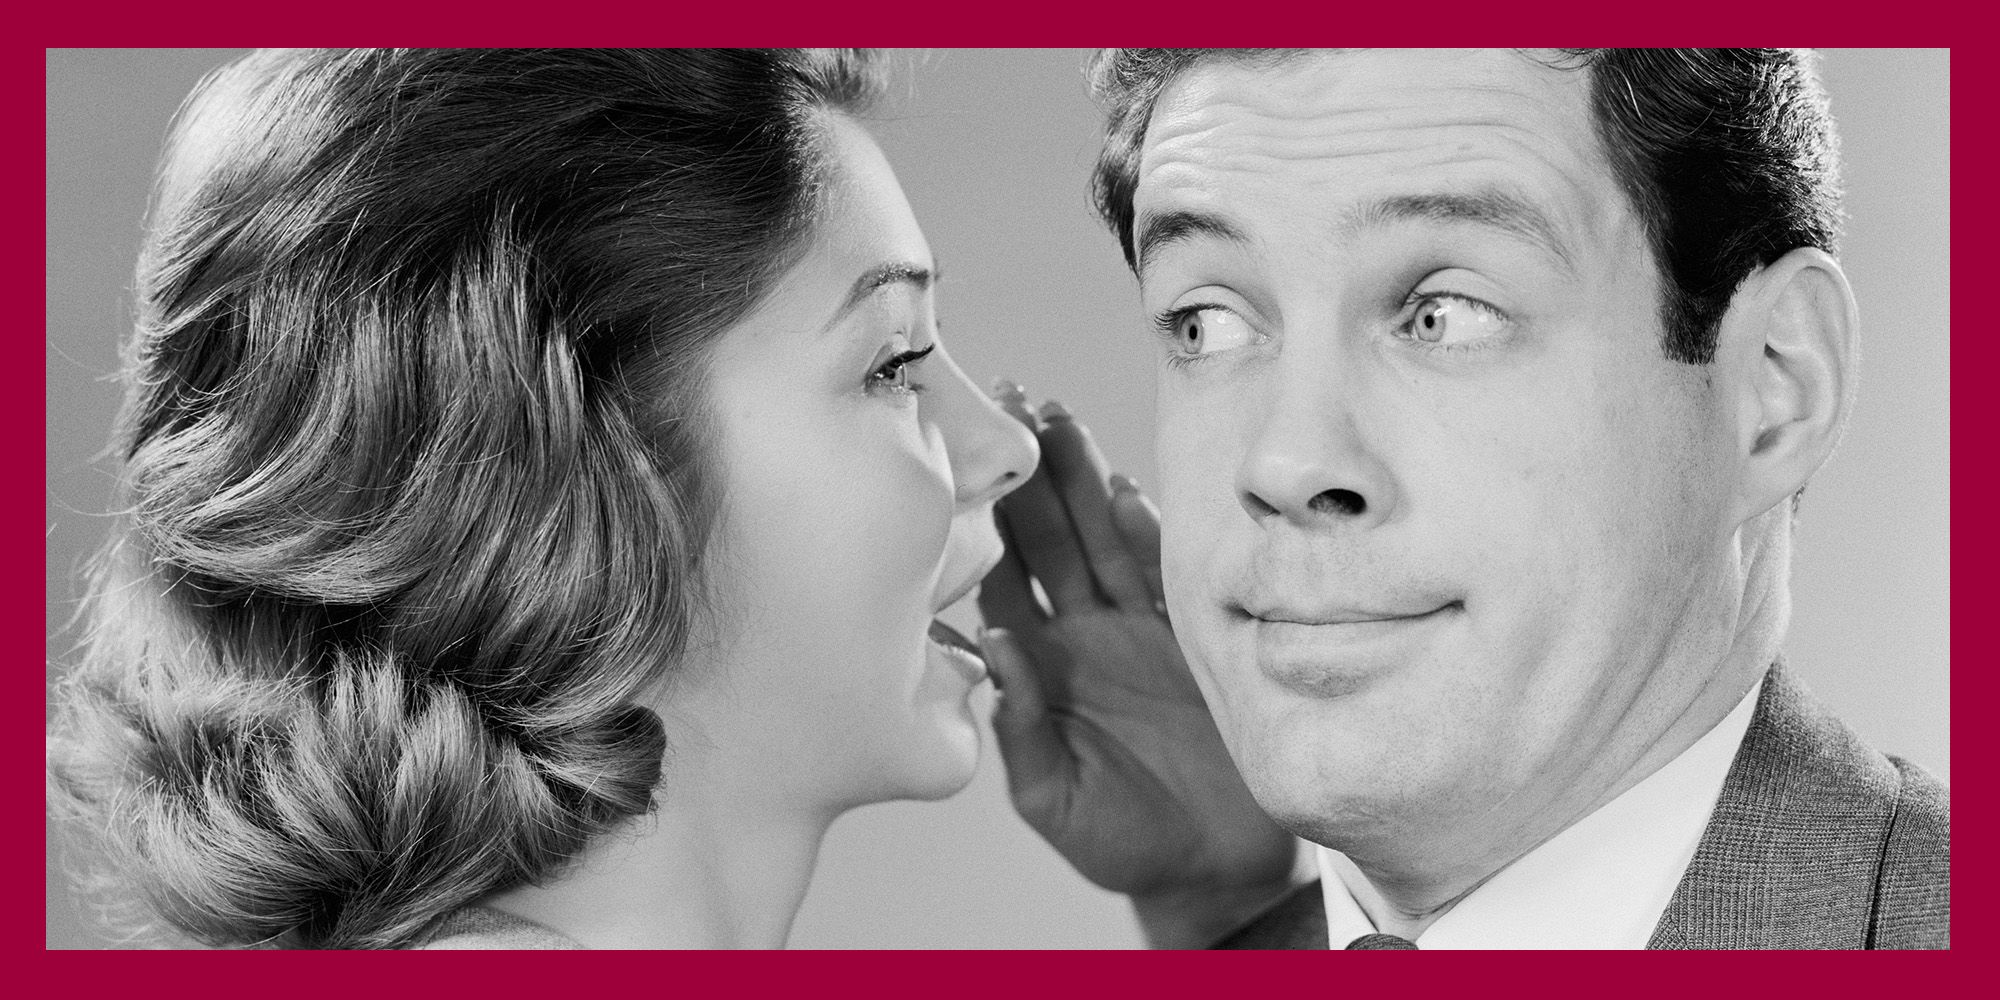 Hottest Things Women Can Say To Men What To Say To Men